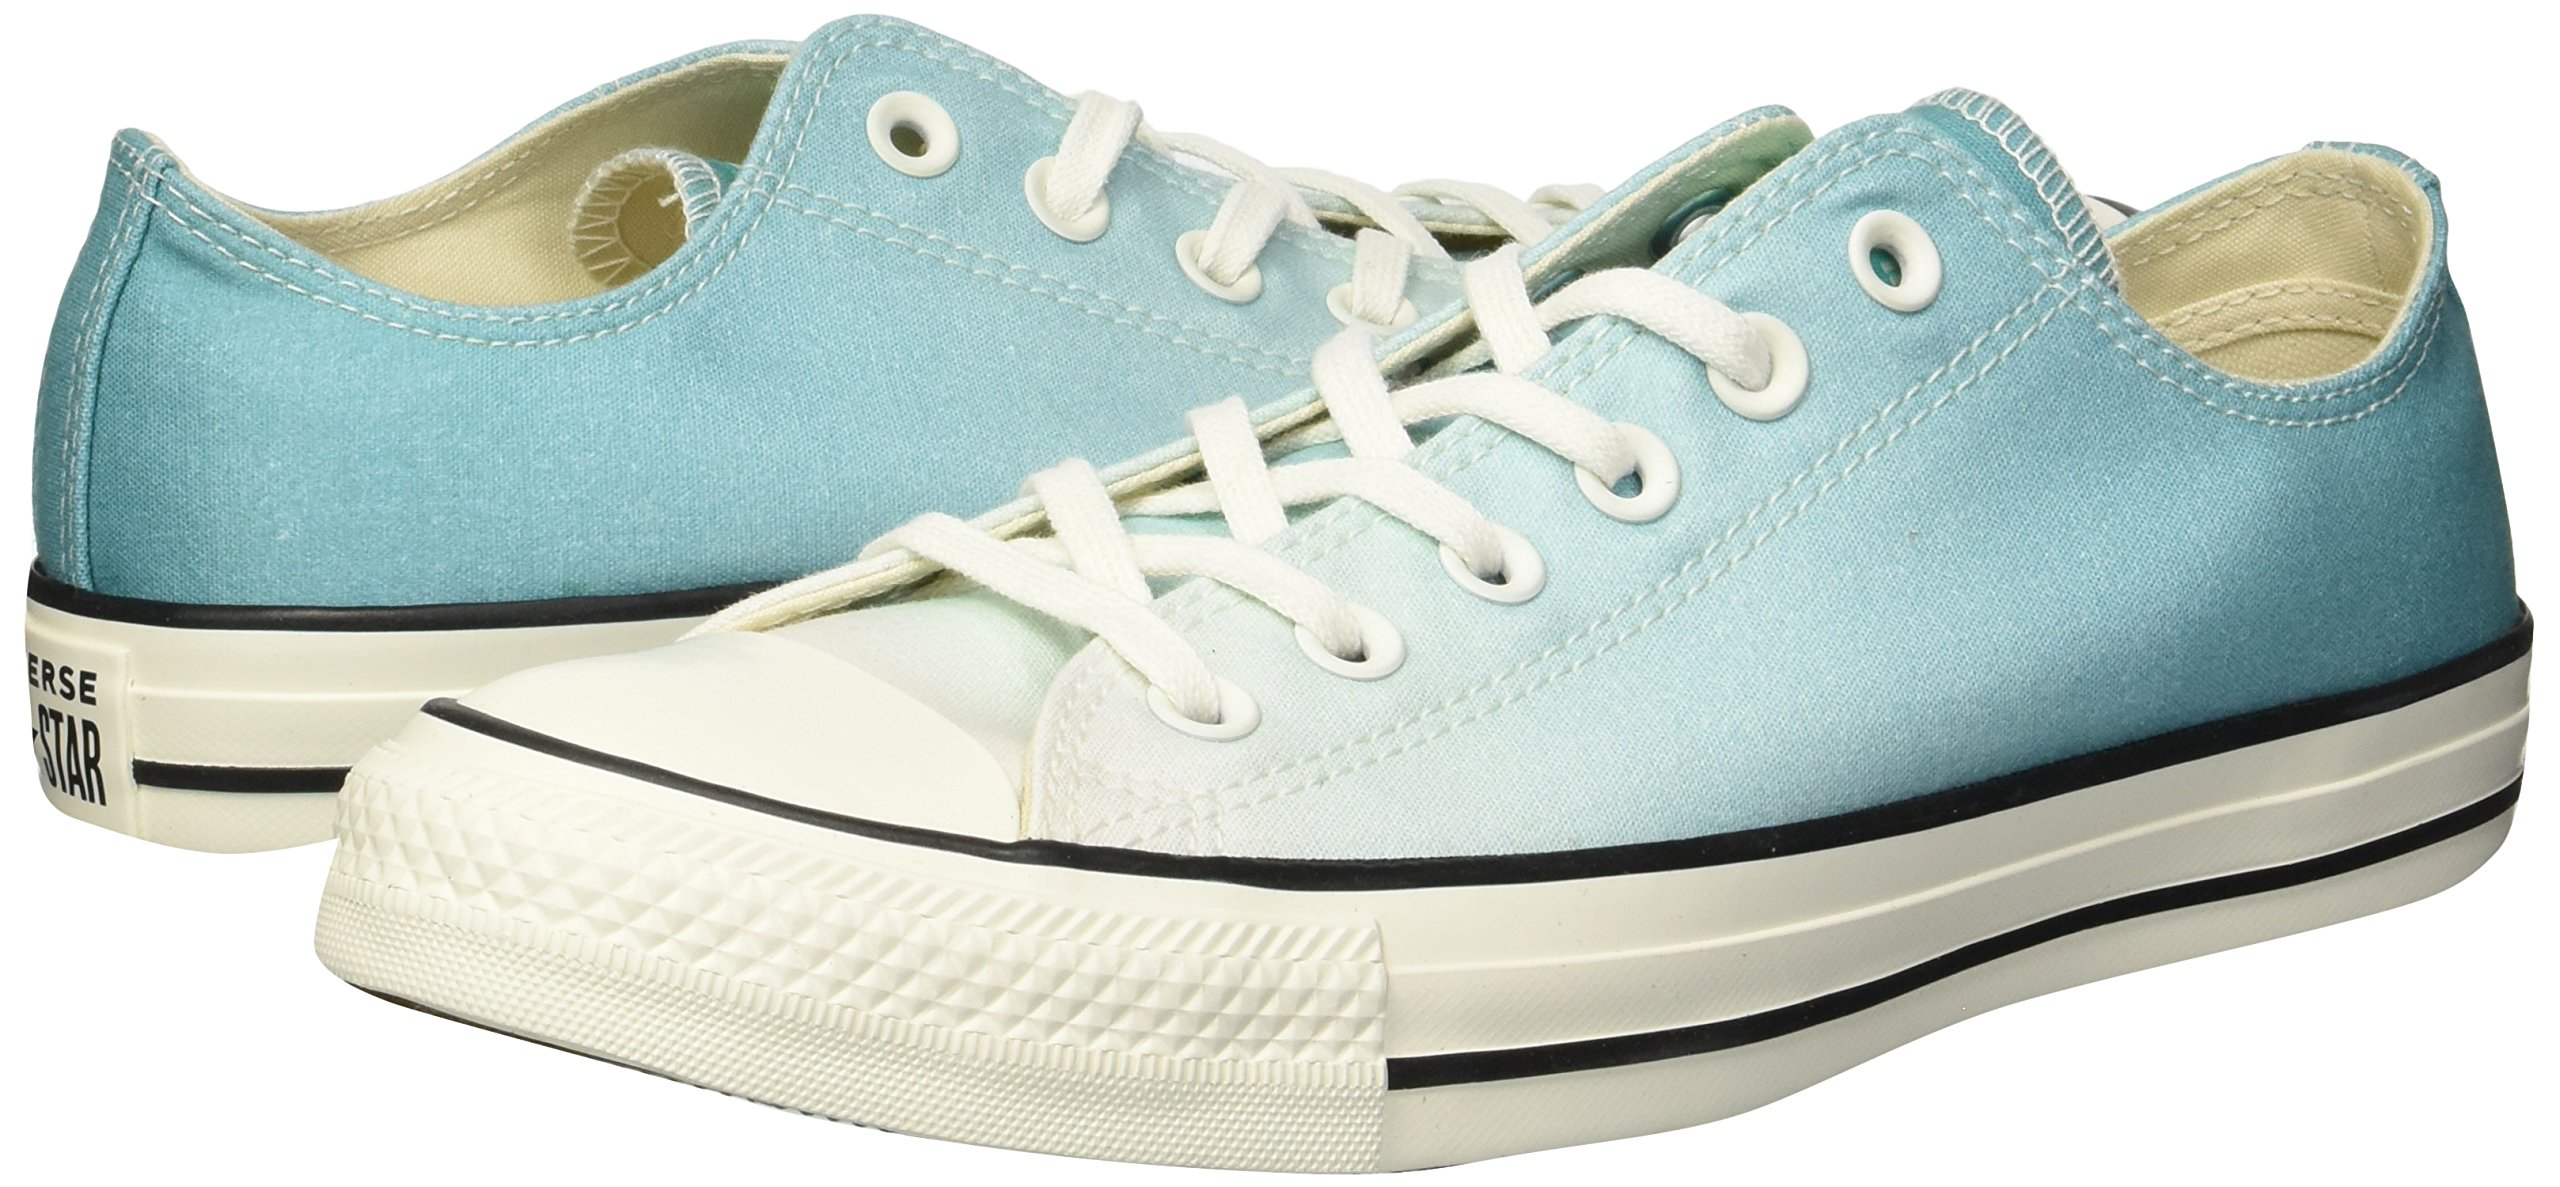 Converse Women's Chuck Taylor All Star Ombre Low TOP Sneaker, Pure Teal egret, 7.5 M US by Converse (Image #5)